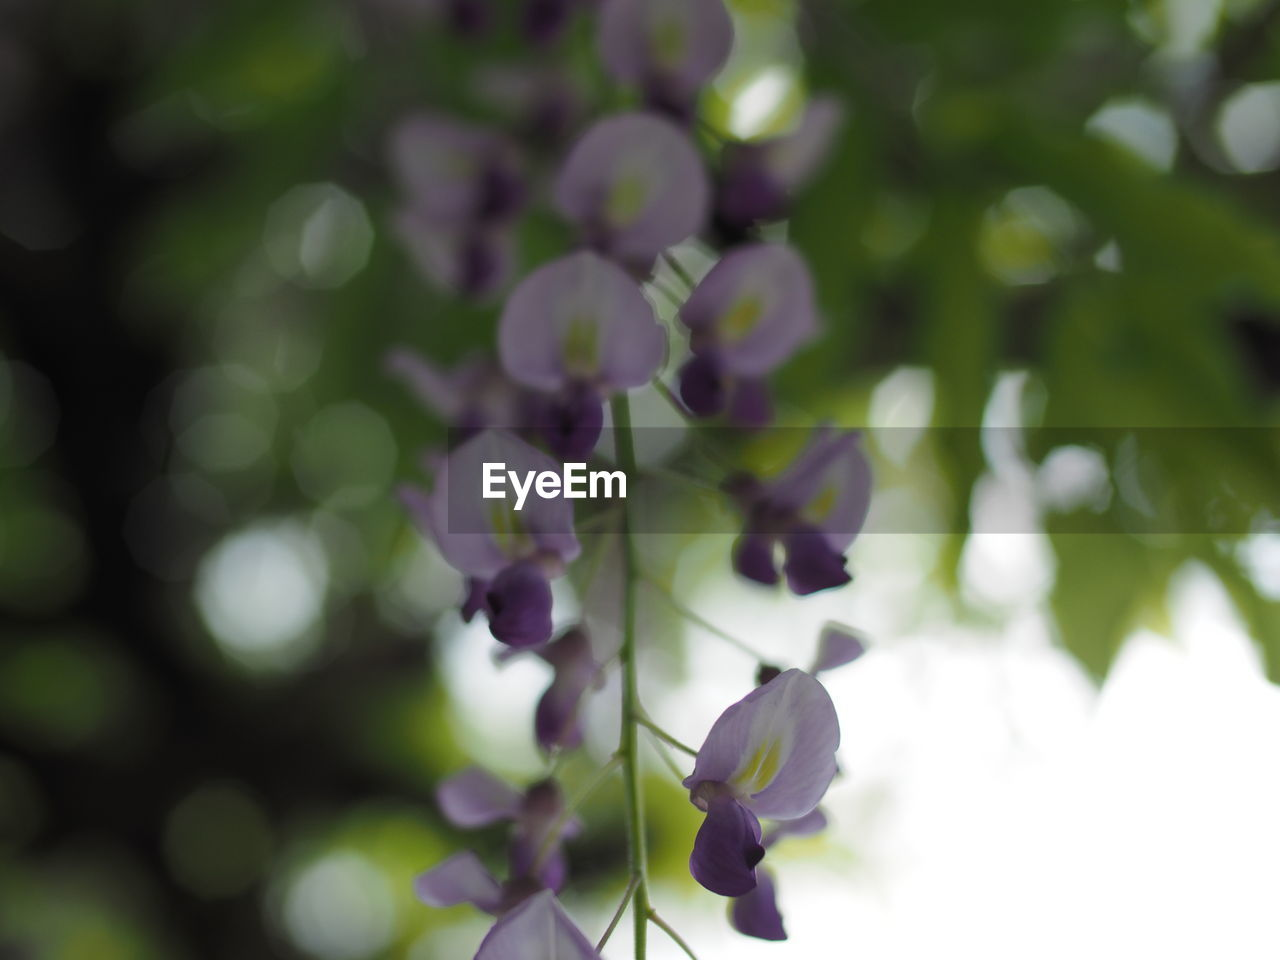 plant, growth, flower, flowering plant, beauty in nature, vulnerability, close-up, fragility, freshness, no people, selective focus, nature, day, petal, focus on foreground, purple, outdoors, green color, springtime, tranquility, flower head